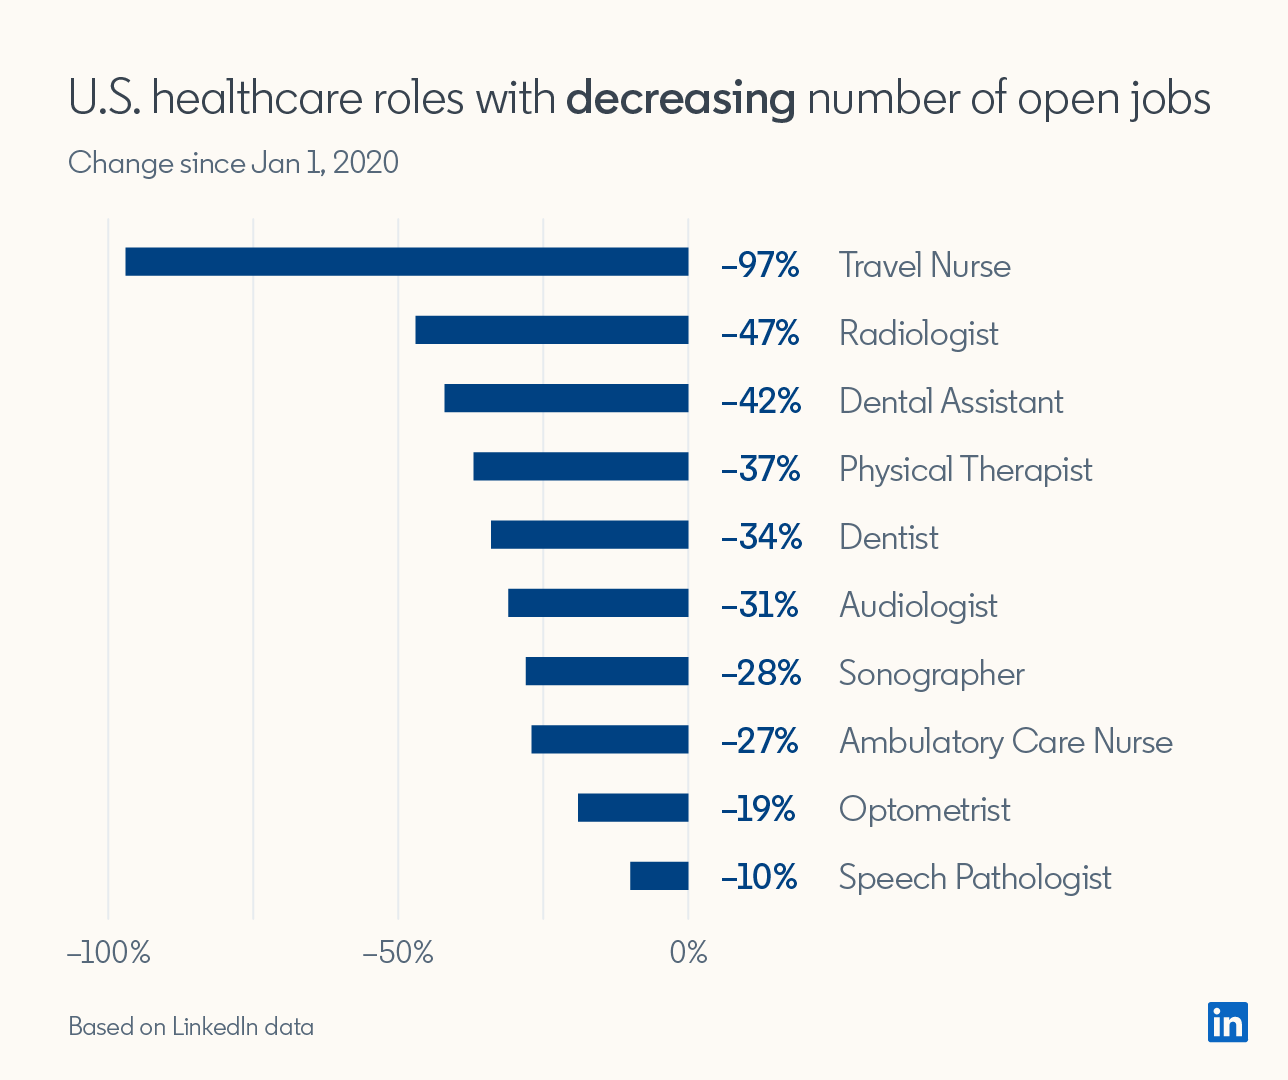 U.S. healthcare roles with decreasing number of open jobs (Changes since Jan 1, 2020)  Travel Nurse -97% Radiologist -47% Dental Assistant -42% Physical Therapist -37% Dentist -34% Audiologist -31% Sonographer -28% Ambulatory Care Nurse -27% Optometrist -19% Speech Pathologist -10%